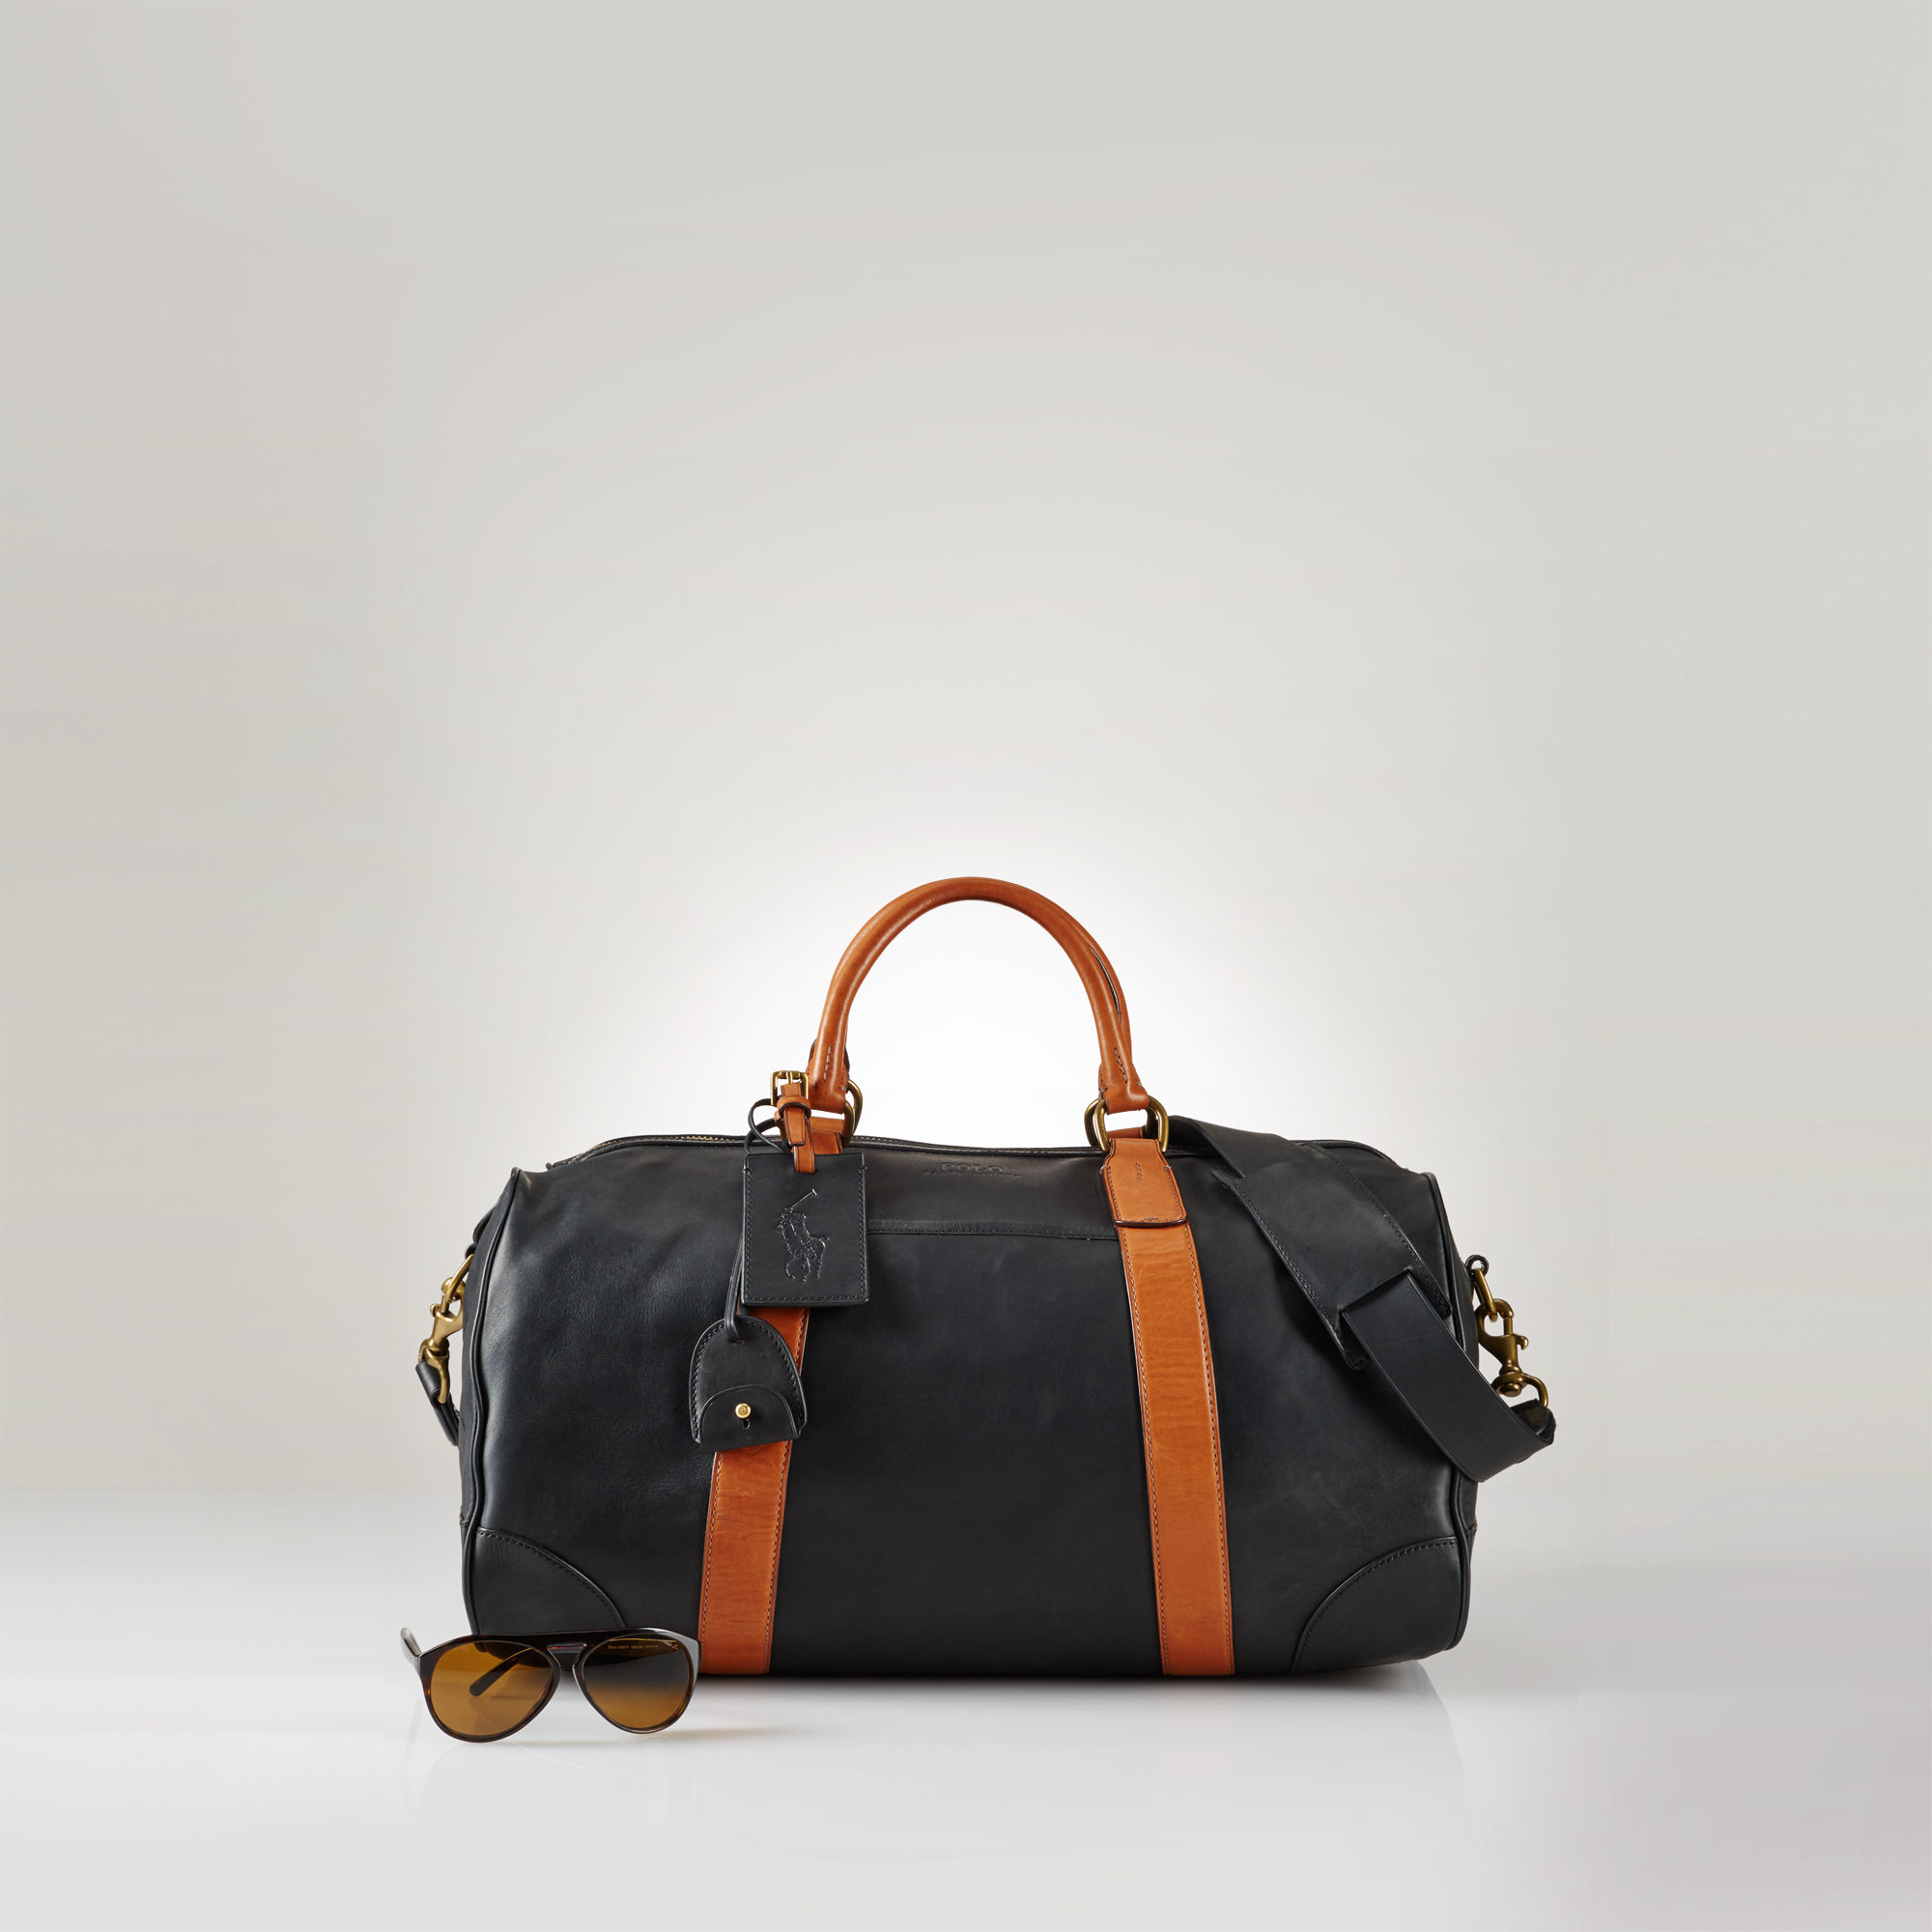 67ced29a3b Polo Ralph Lauren Smooth Leather Duffle Bag in Black for Men - Lyst